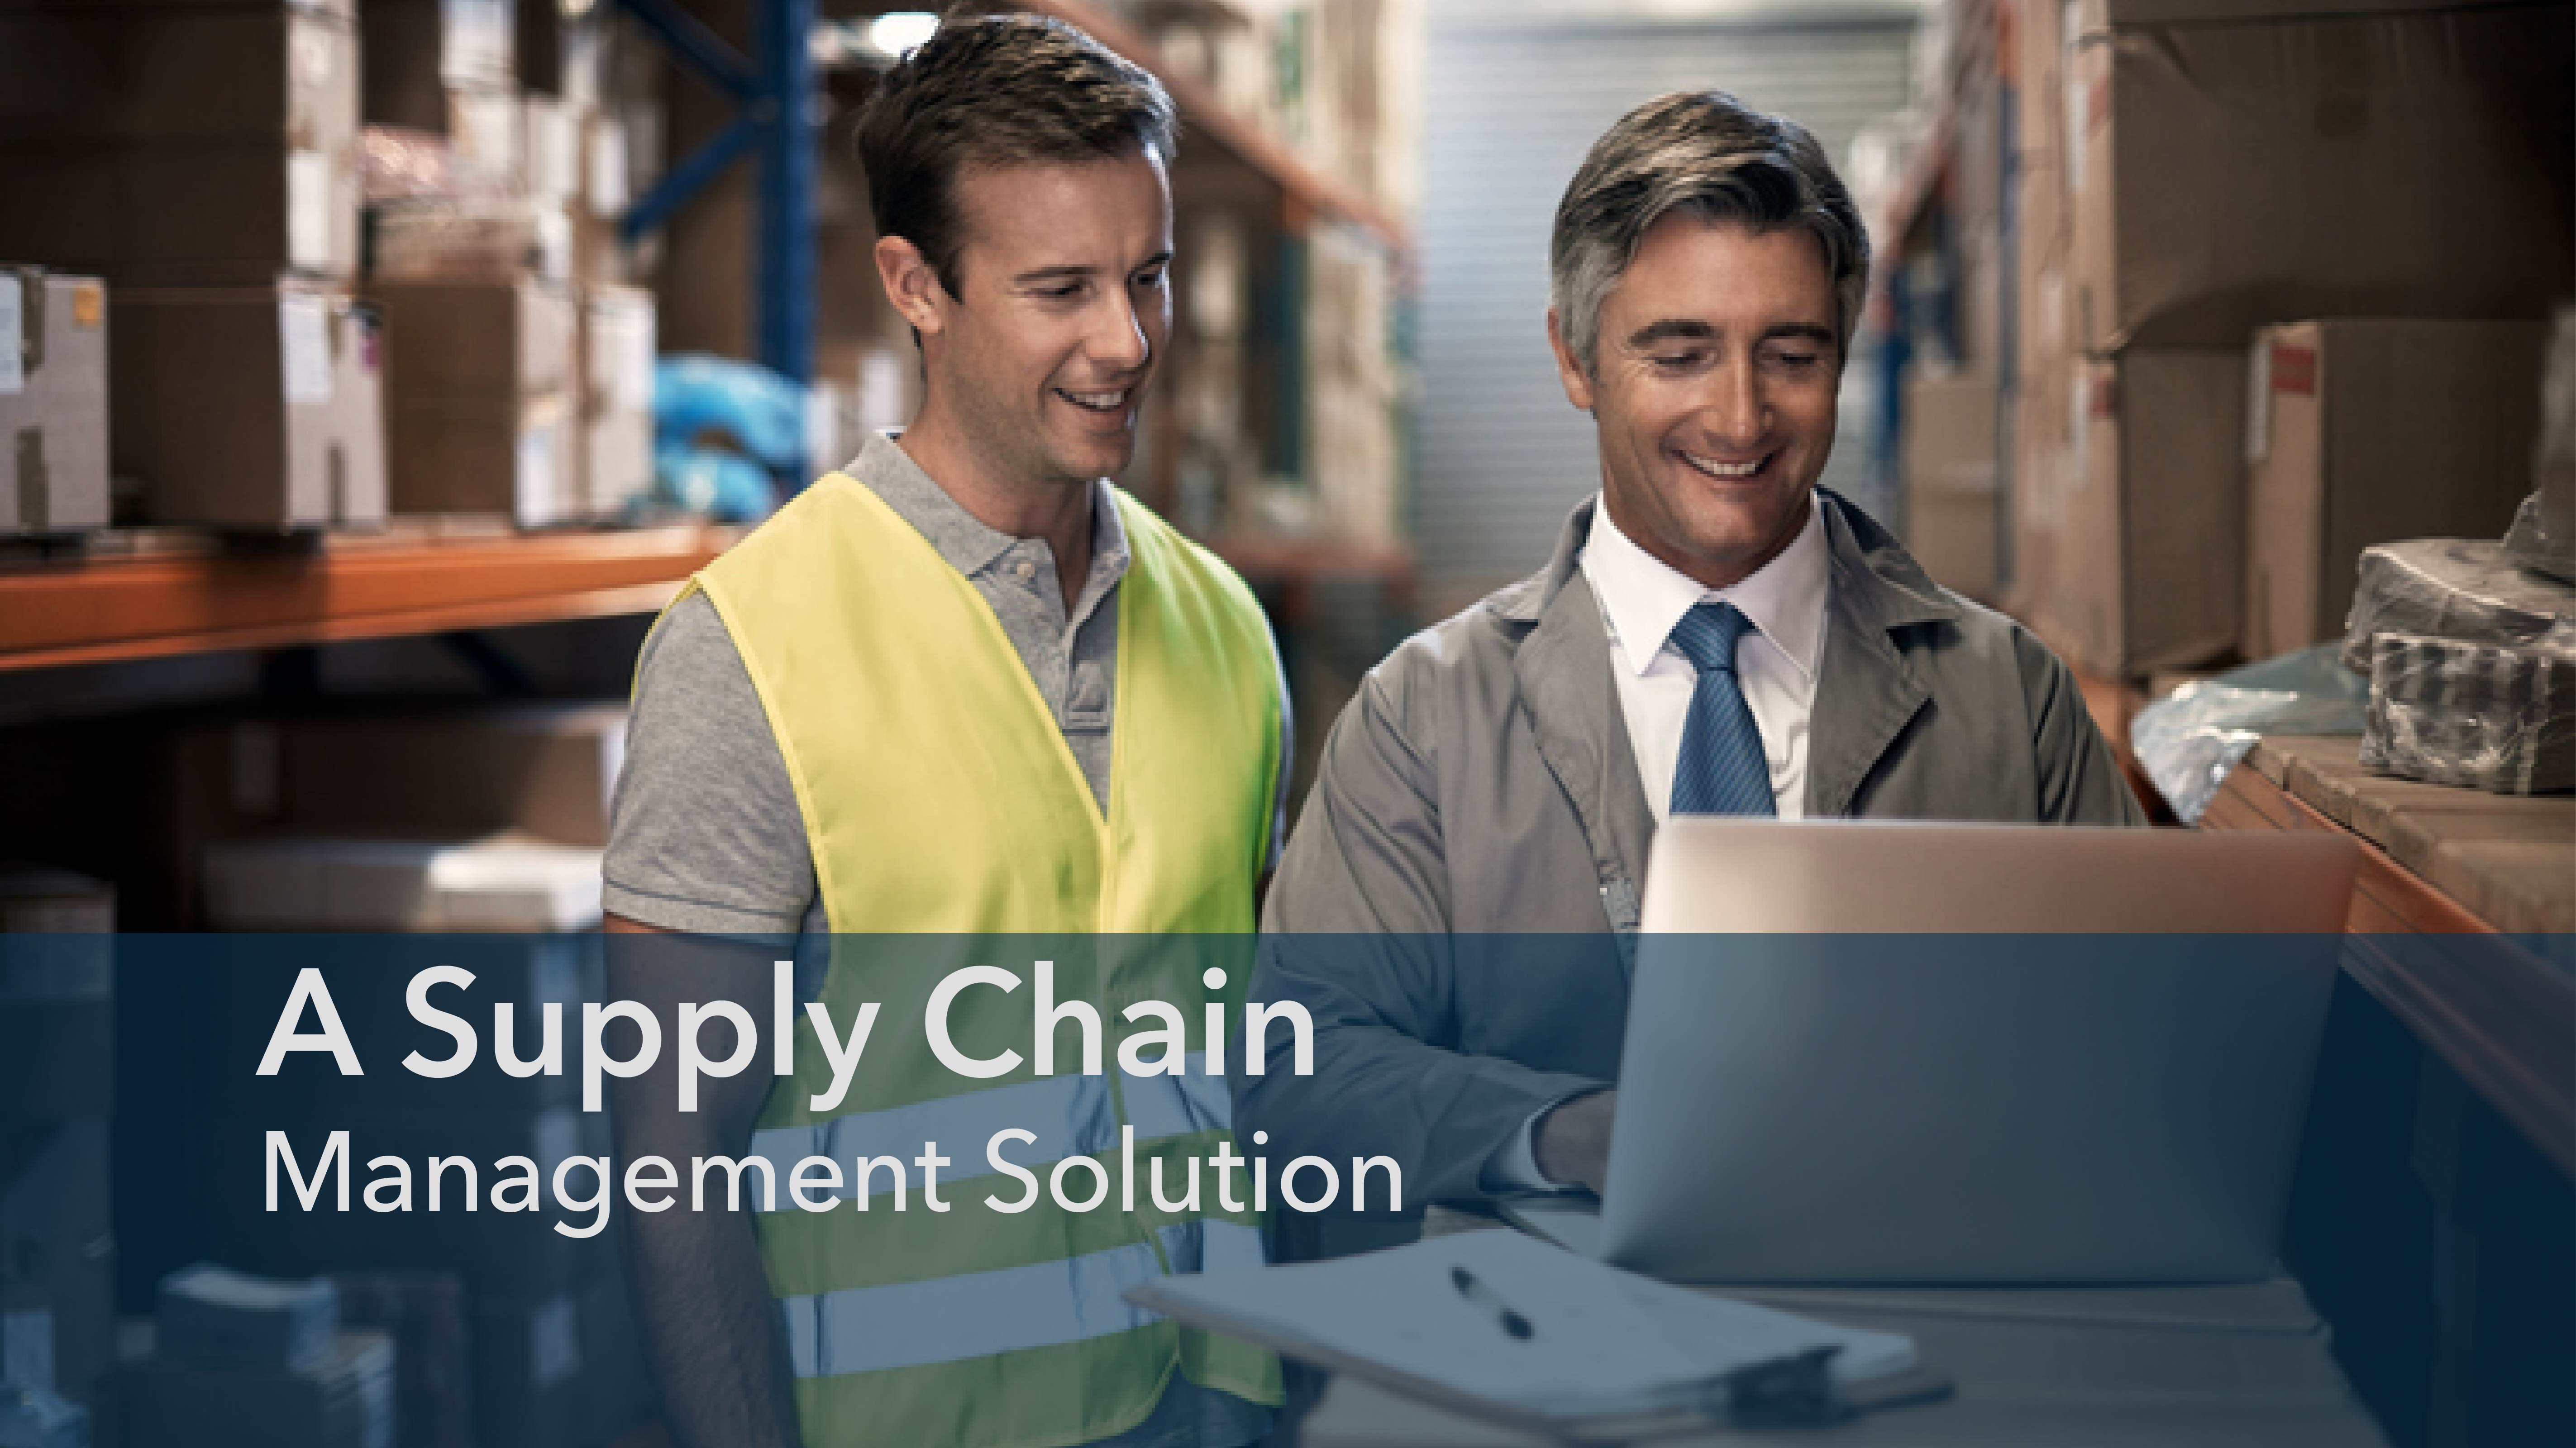 A Supply Chain Management Solution